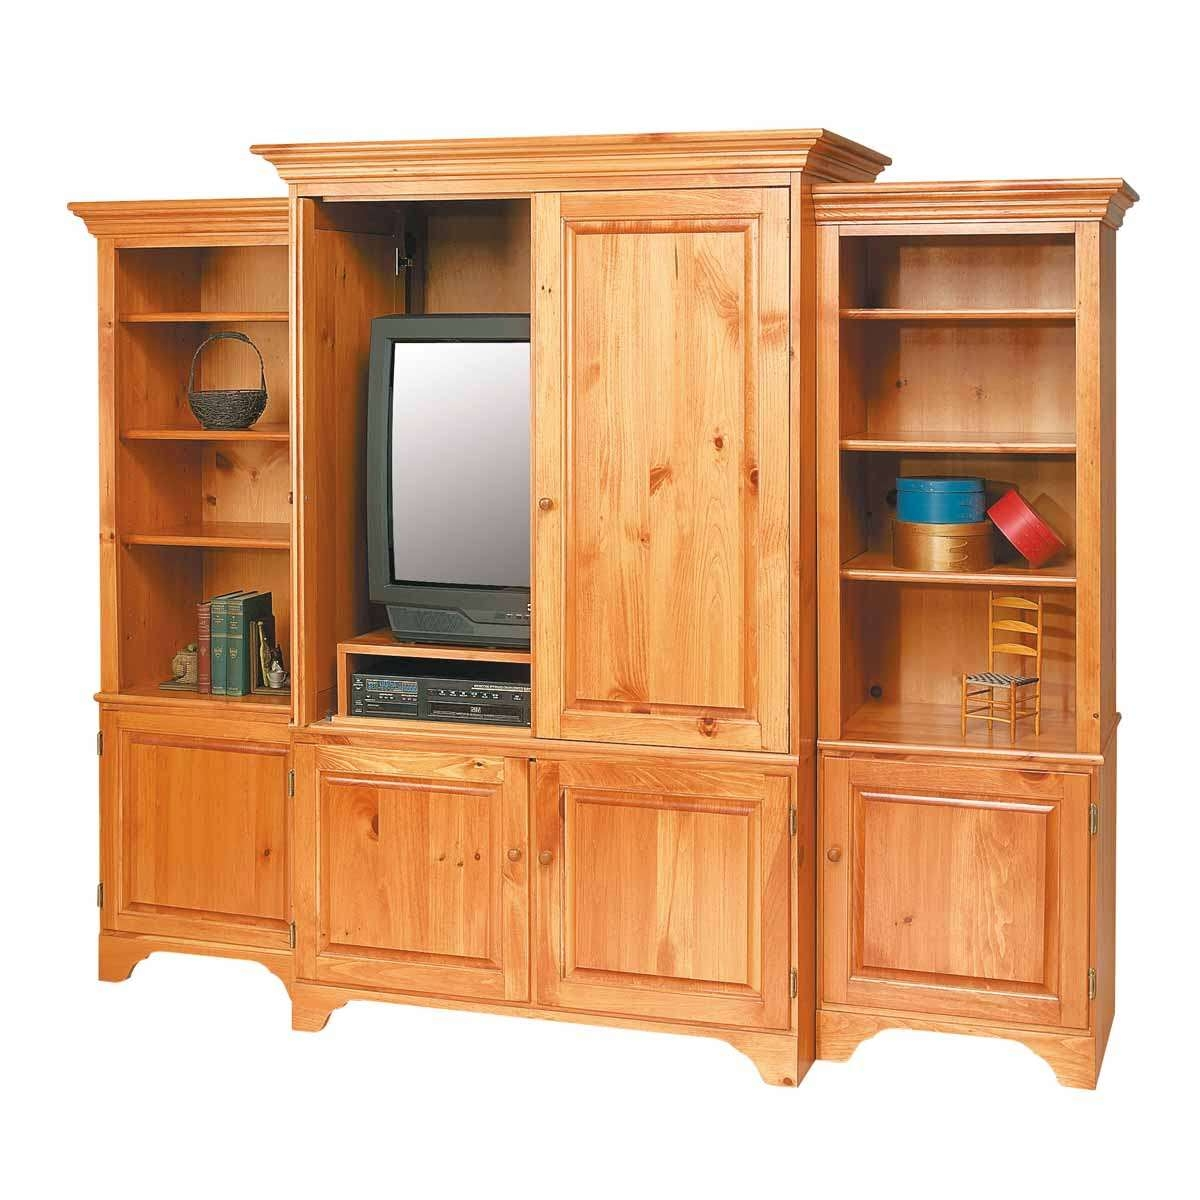 Unfinished Pine Tv Stands Entertainment Center Solid Natural Pi With Regard To Pine Tv Cabinets (Gallery 7 of 20)